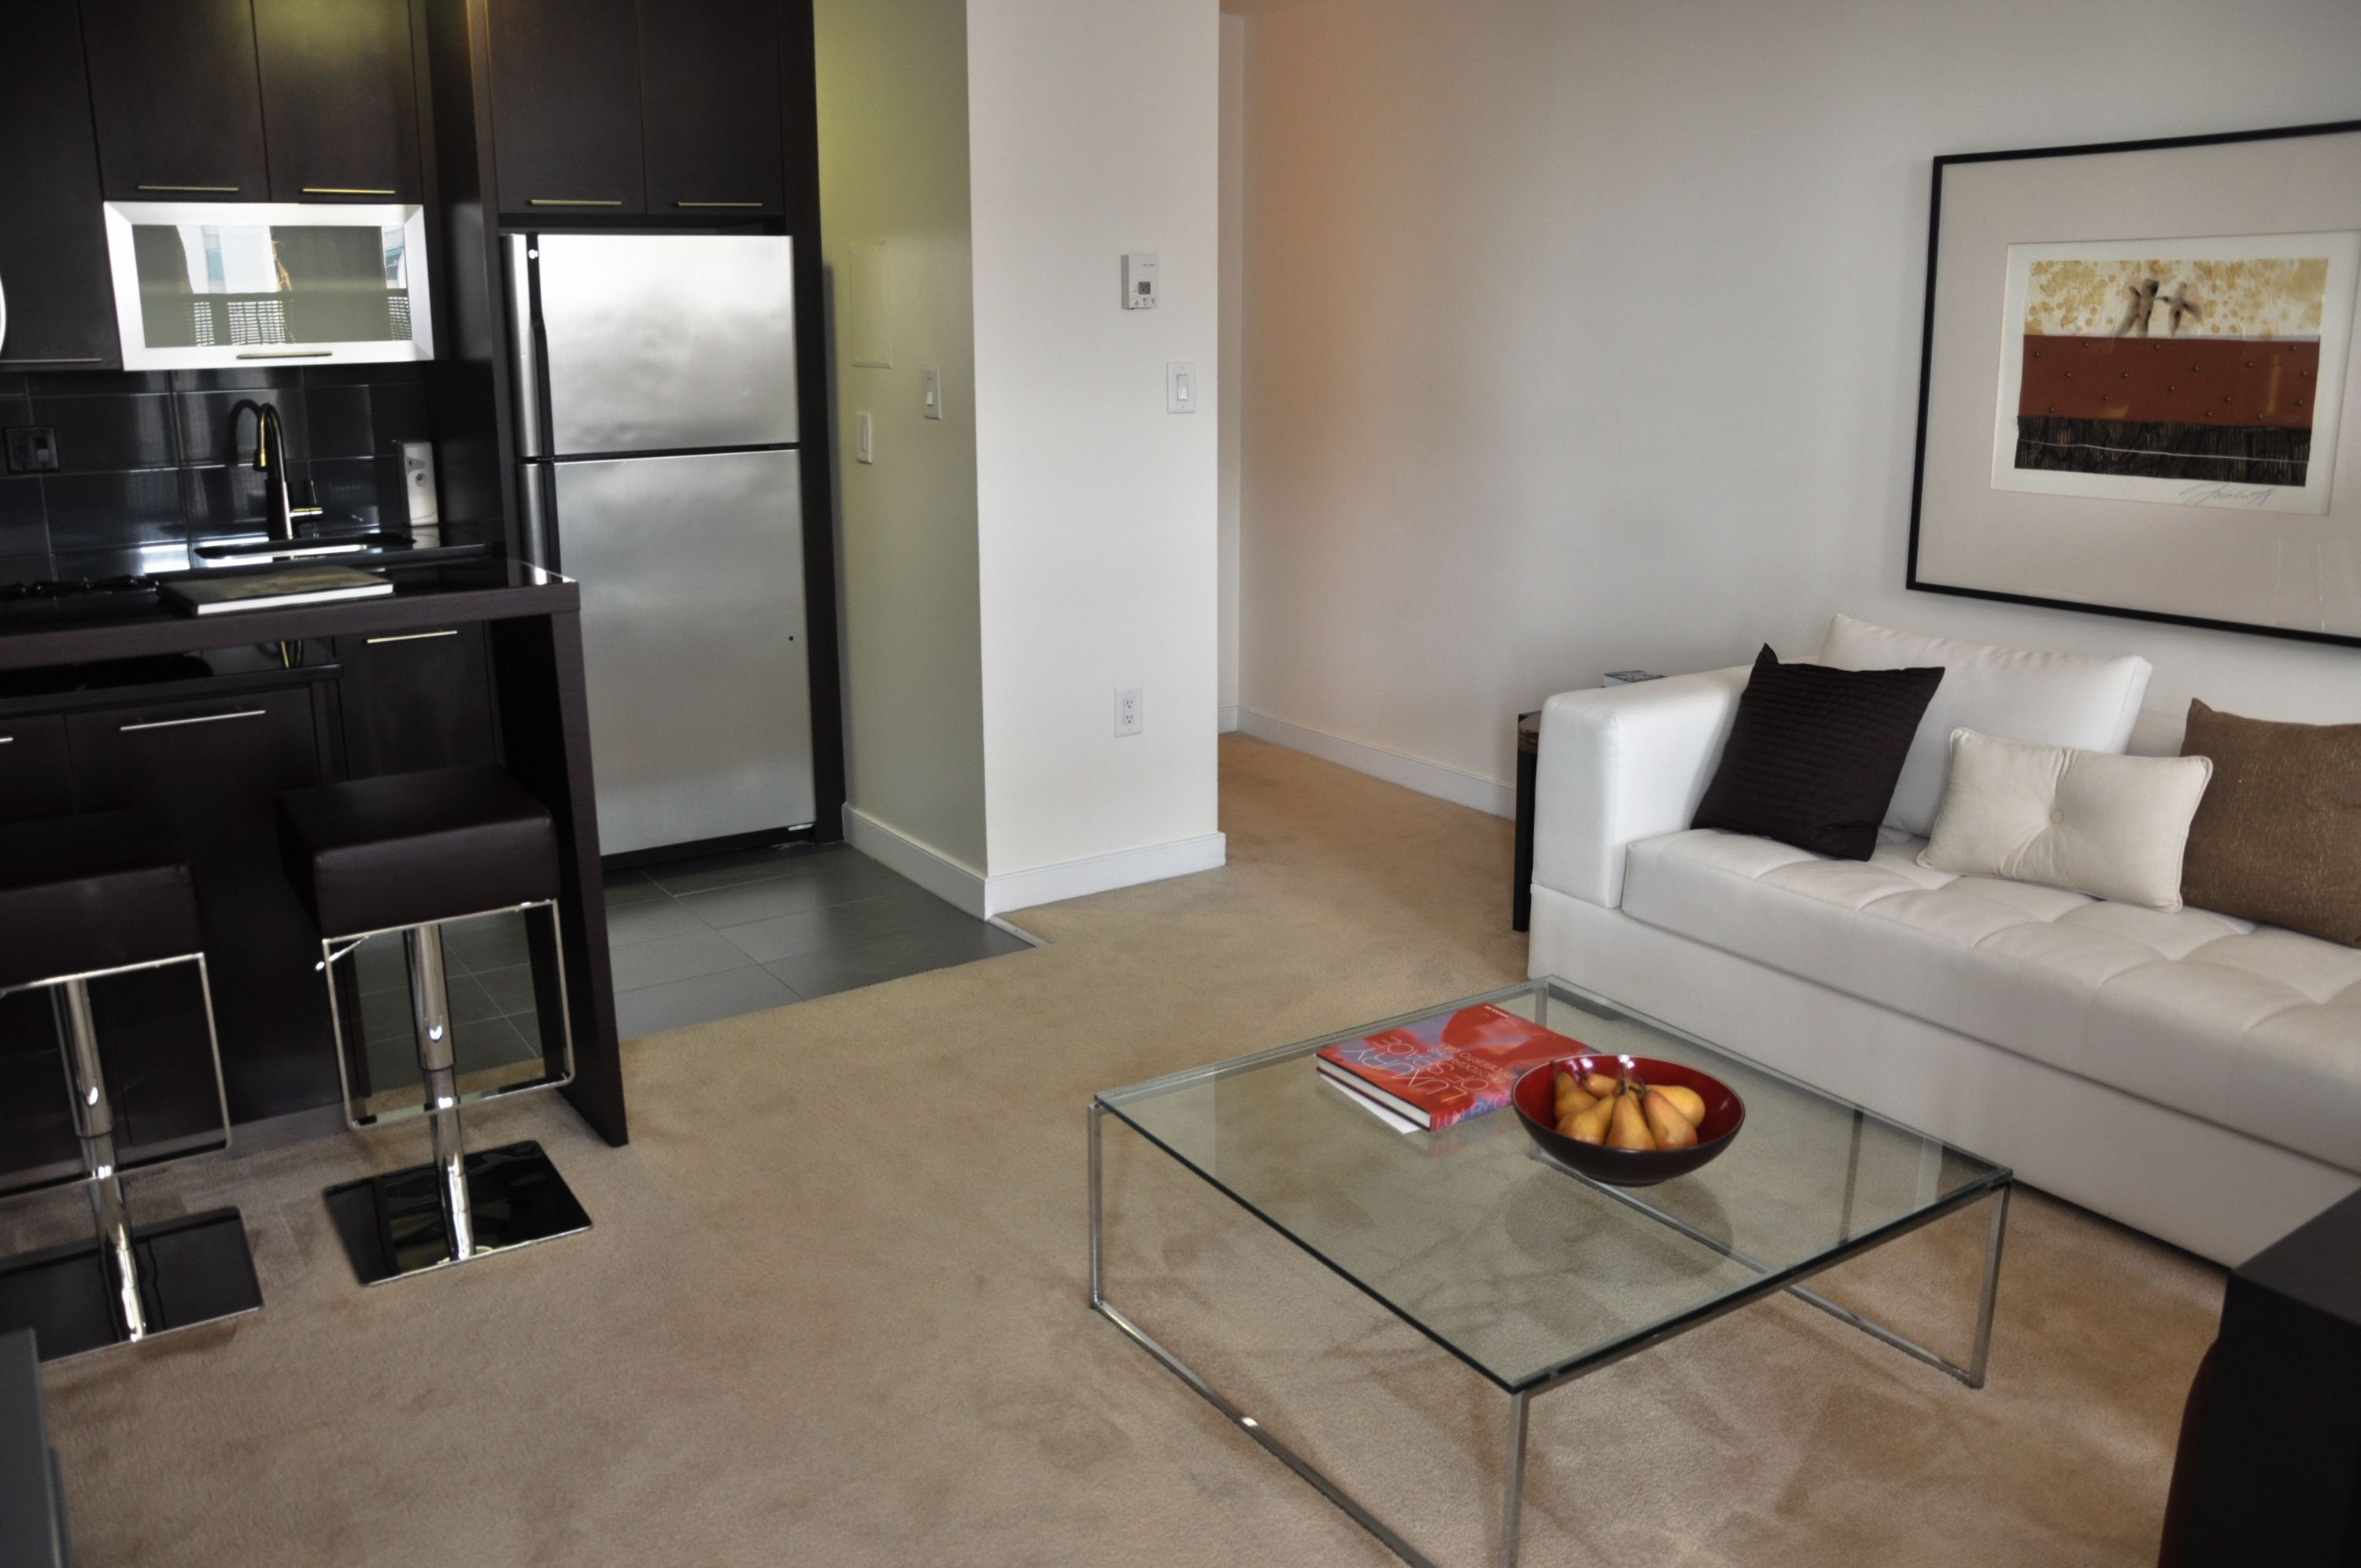 Interior Of The Manchester 1 Bath Studio Apartment At The Point At Silver Spring Http Ow Ly Zrk3g Homedecor C Apartment Living Home Decor Interior Design